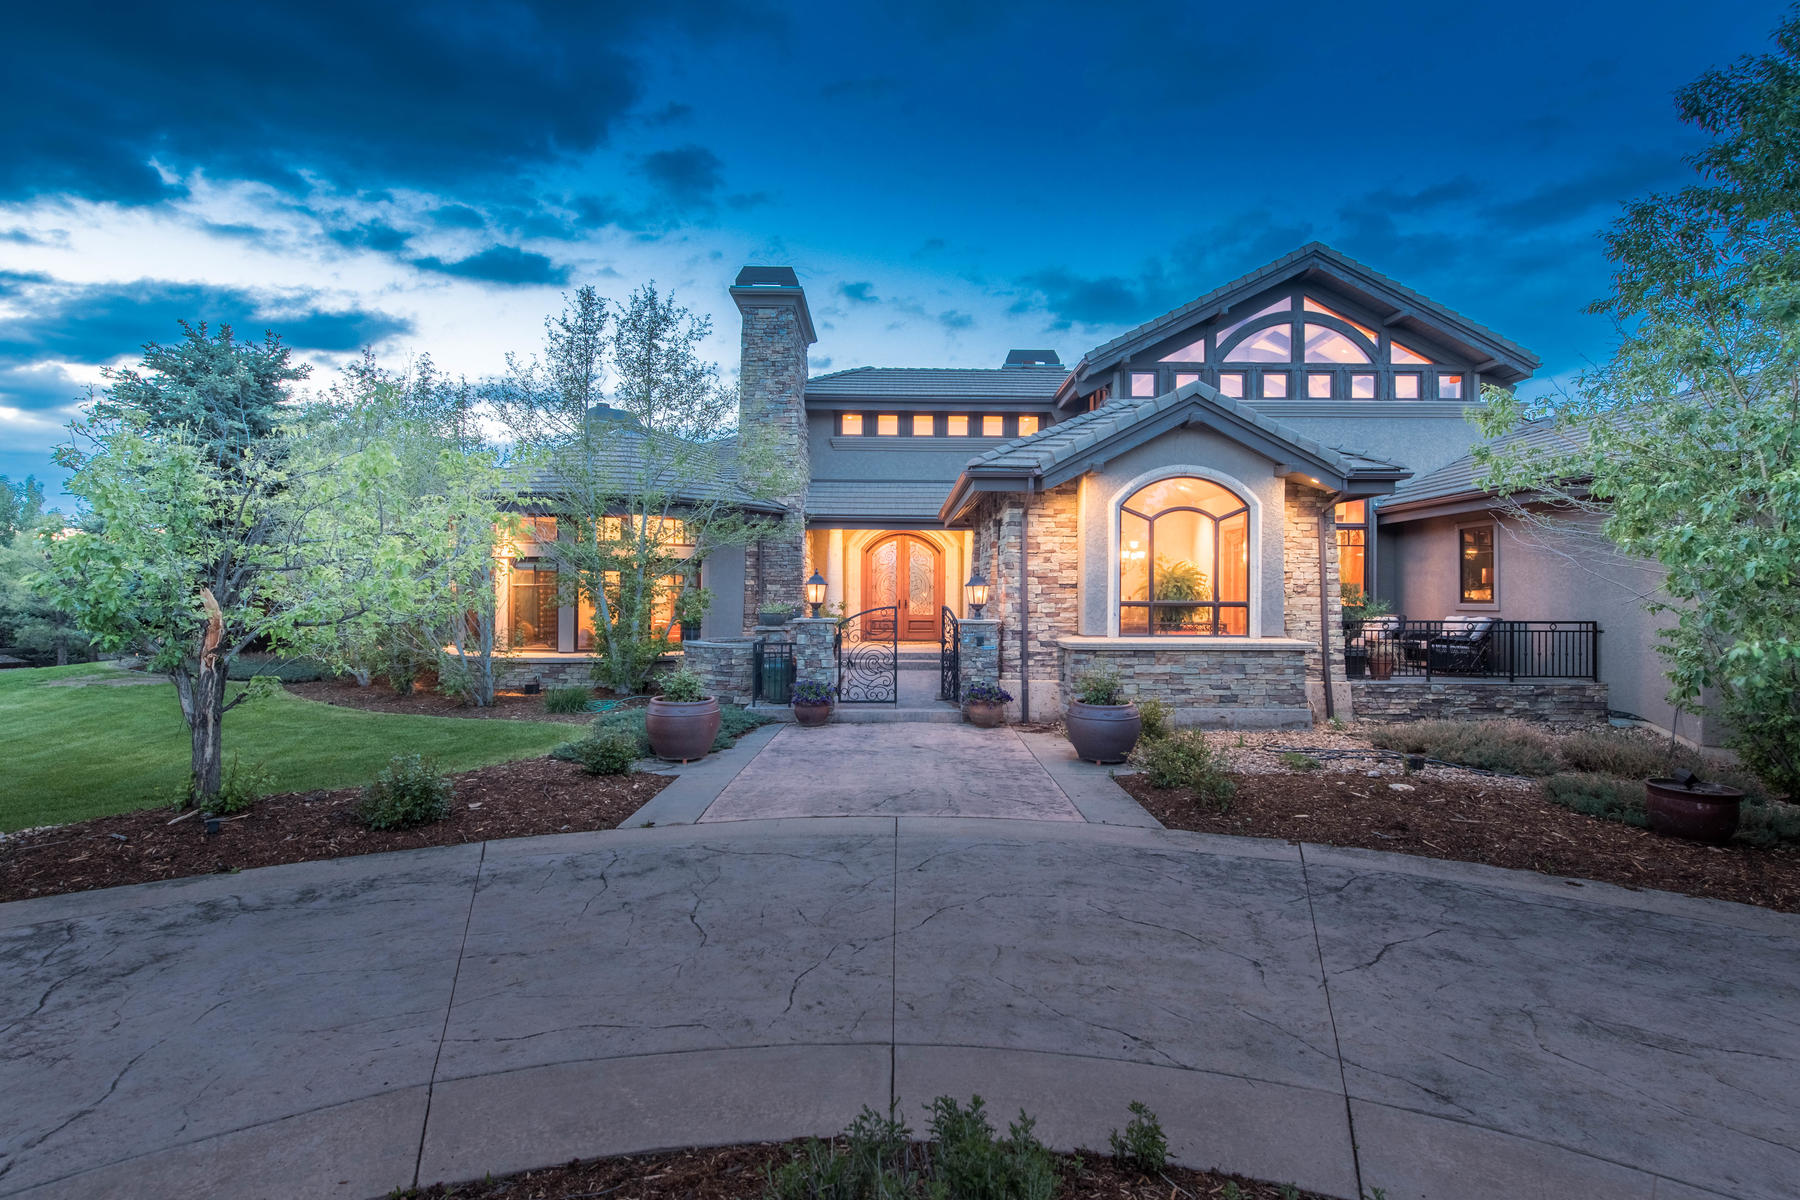 Single Family Home for Active at Tuscan Contemporary Estate 1110 White Hawk Ranch Dr Boulder, Colorado 80303 United States